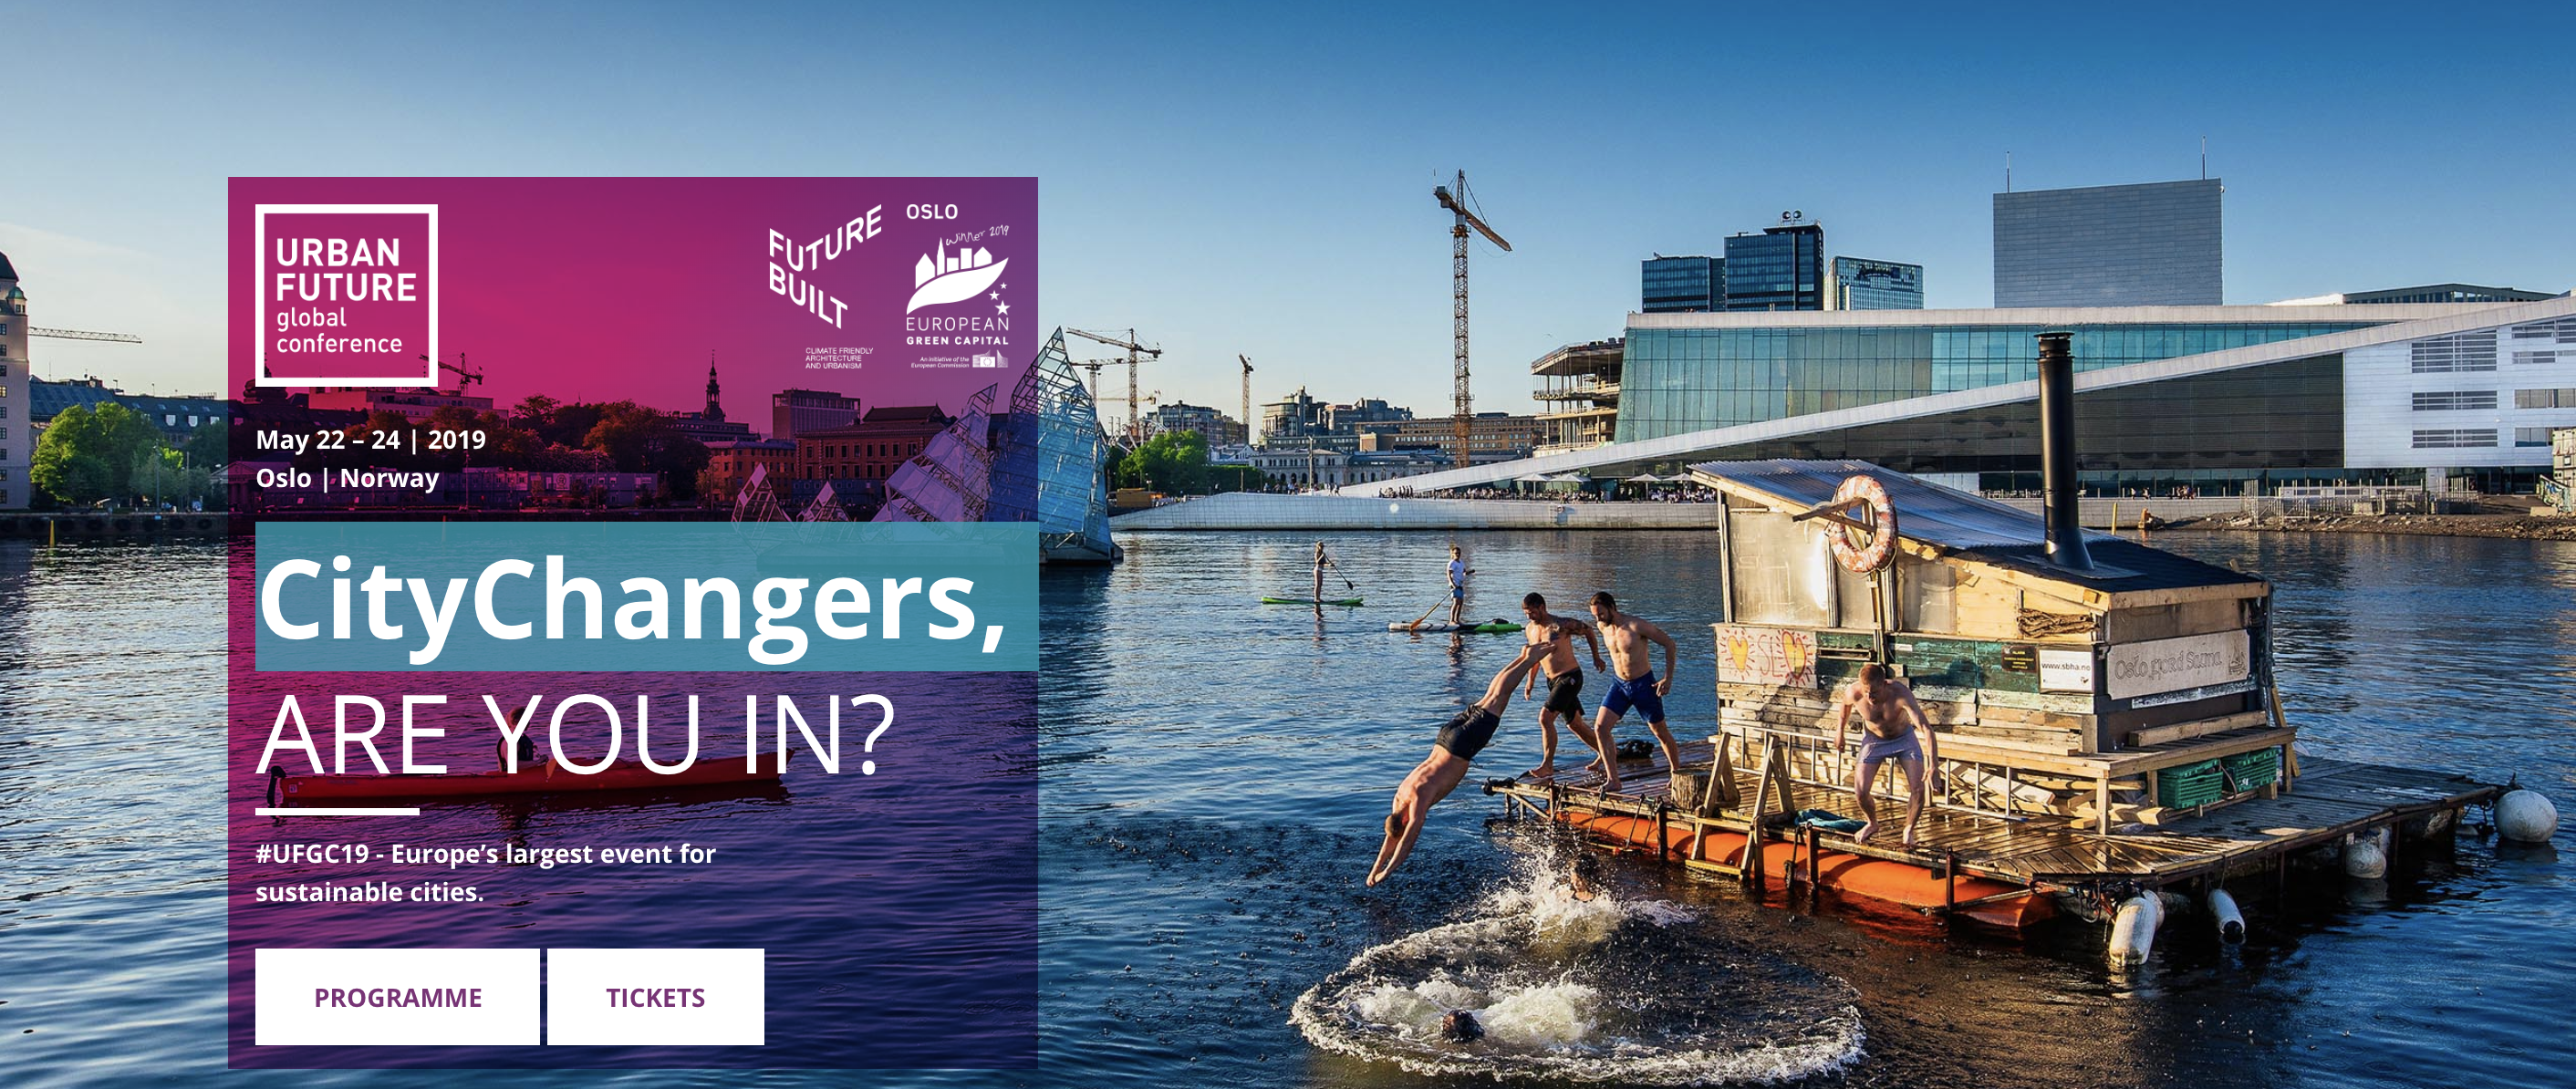 CityChangers, ARE YOU IN?